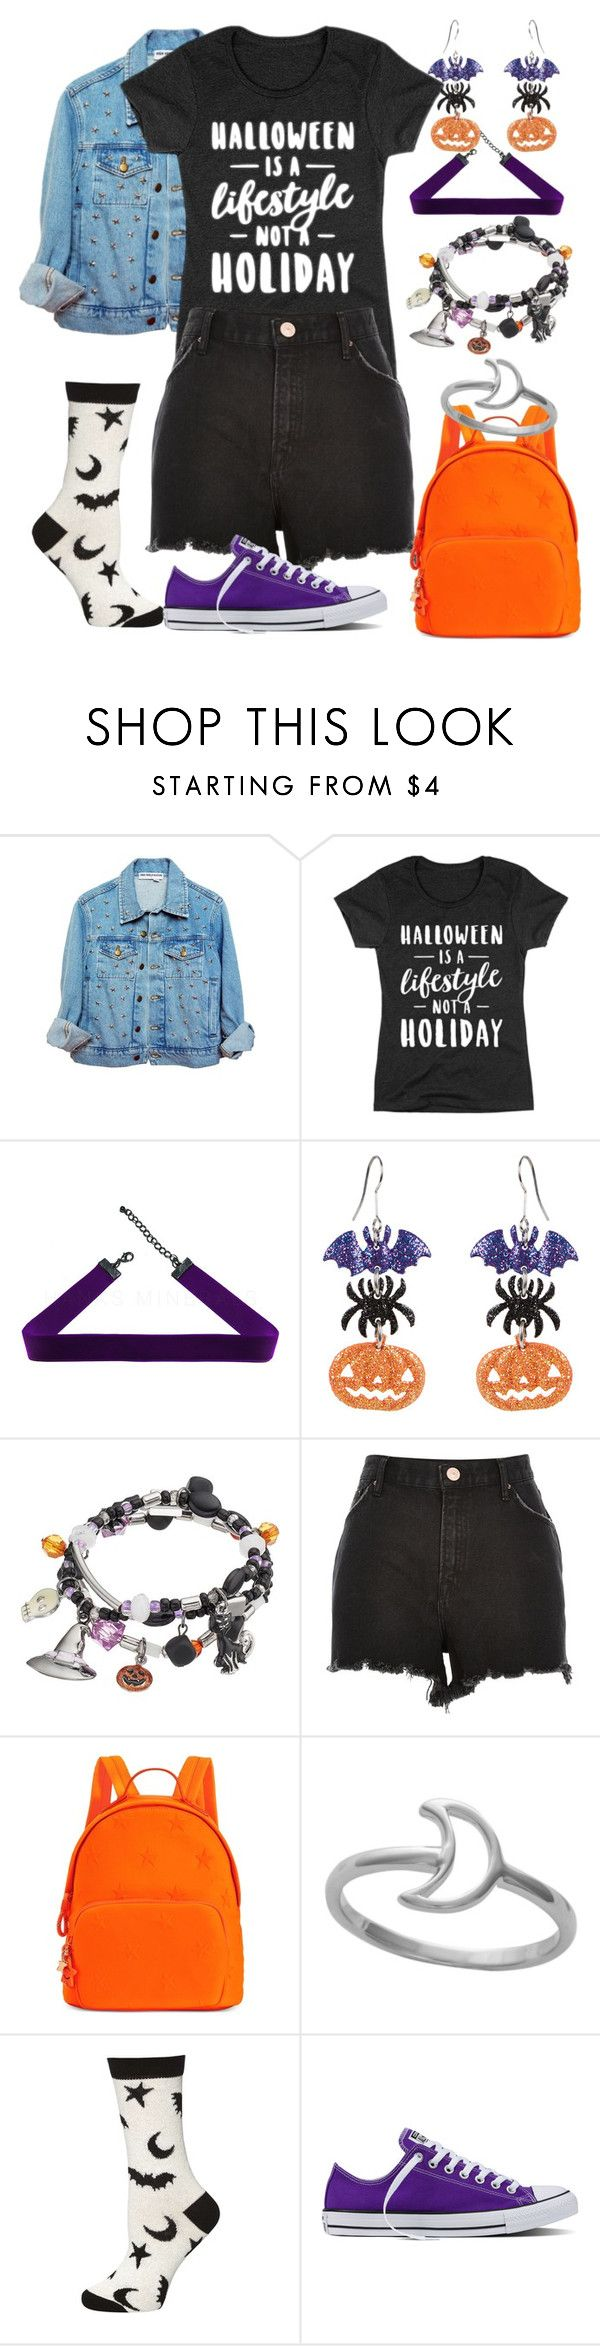 """Sans titre #4488"" by kina-ashley ❤ liked on Polyvore featuring High Heels Suicide, Festuvius, Accessorize, River Island, Tommy Hilfiger, Midsummer Star, Dorothy Perkins and Converse"